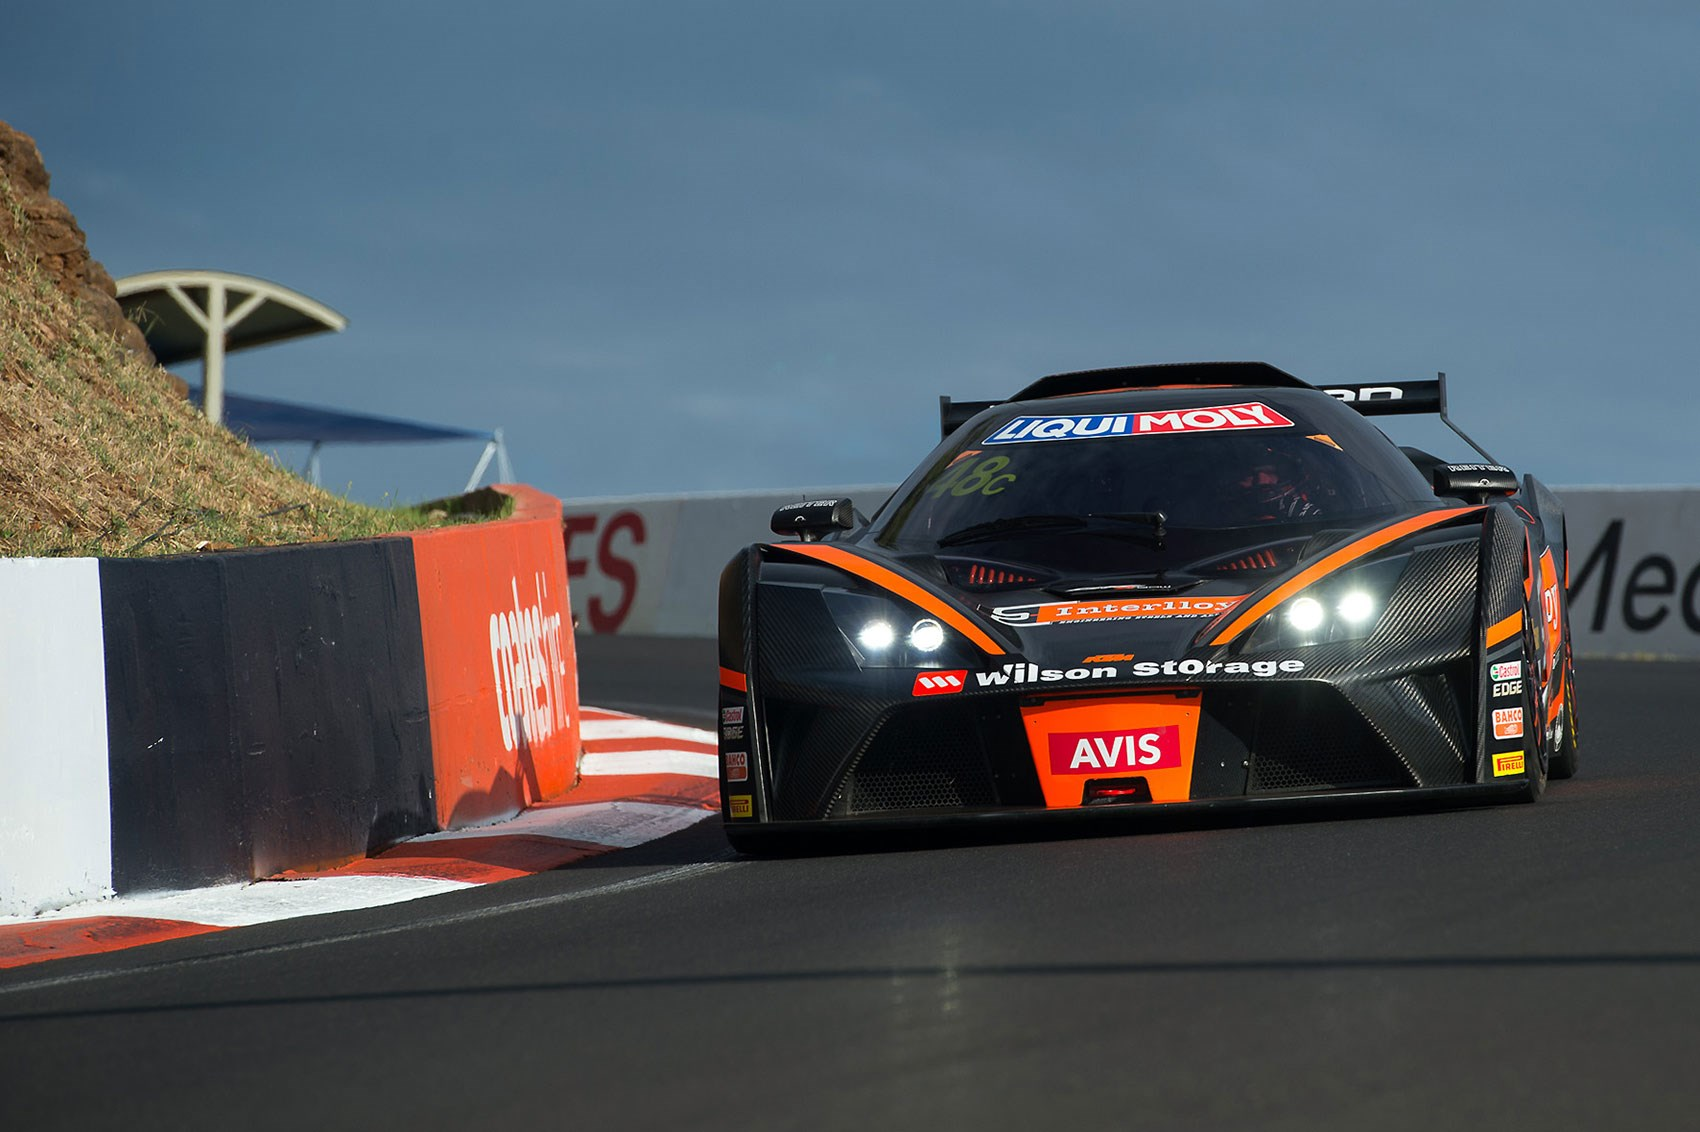 he finished third bathurst is a car breaker fire damage forced ktm s threatening looking x bow to retire from the lead of the gt4 class